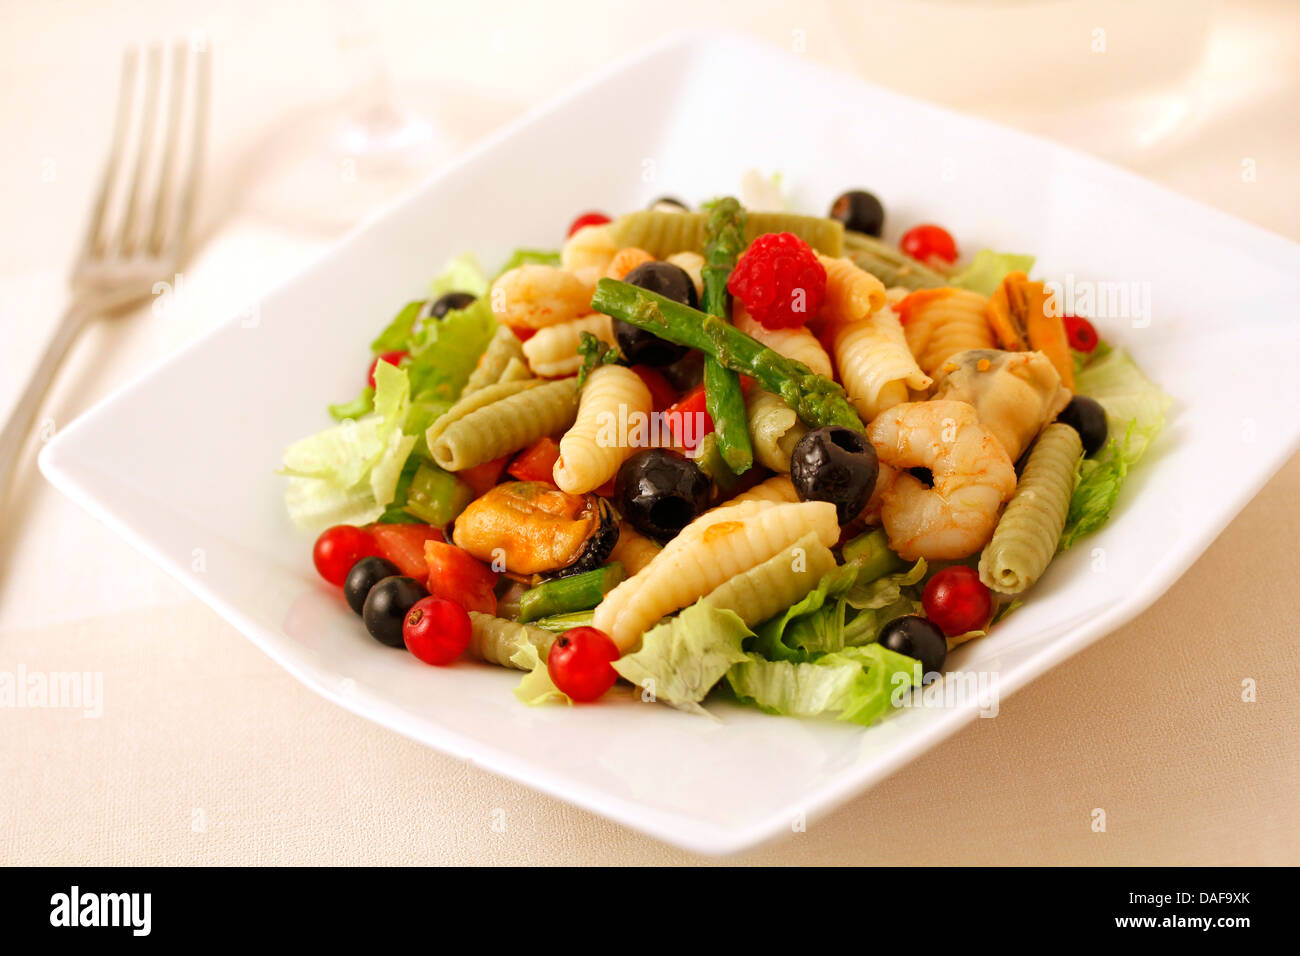 Sea and forest salad. Recipe available. - Stock Image